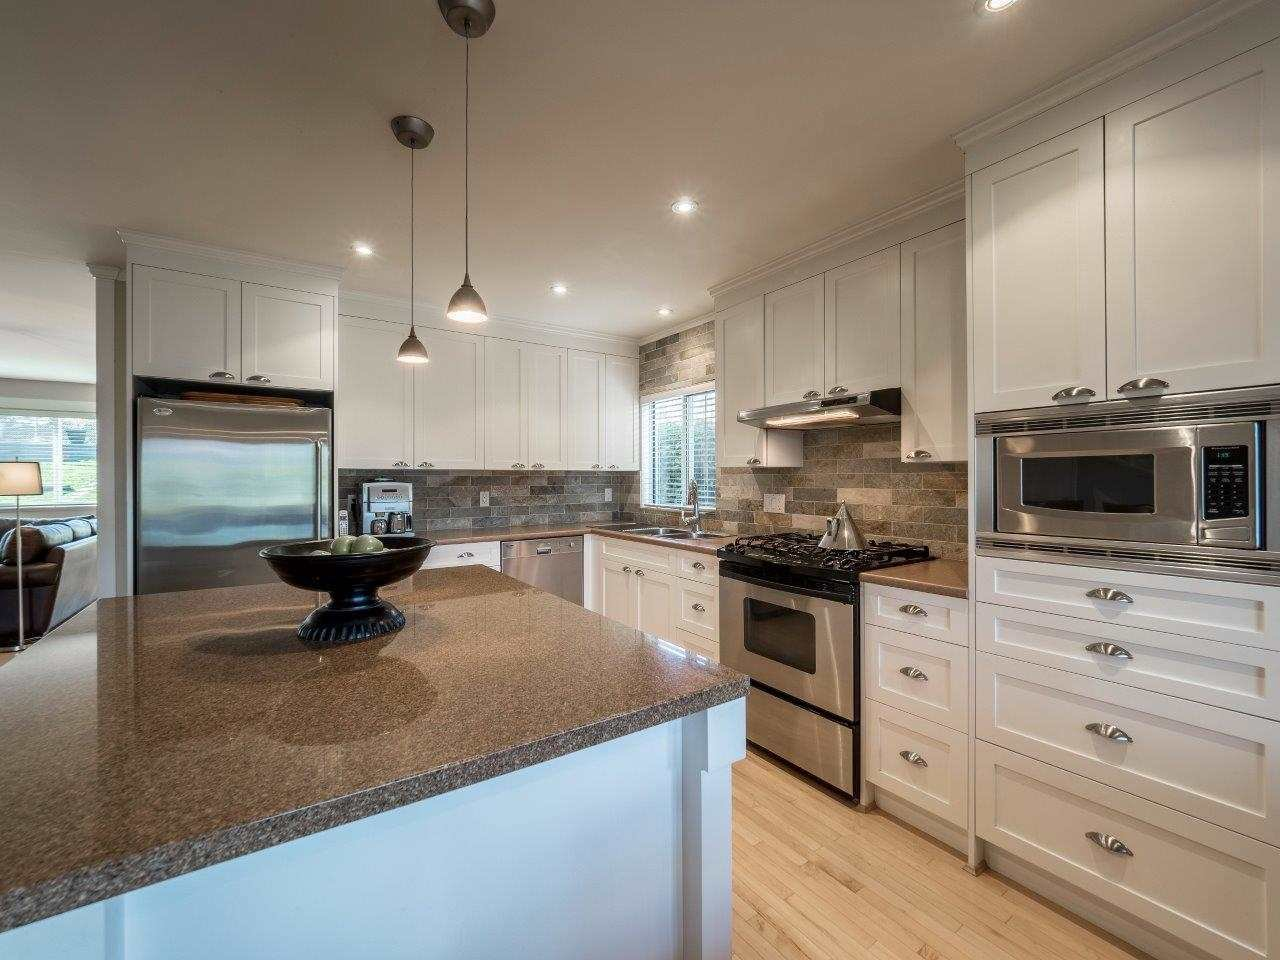 Photo 6: Photos: 345 BEACHVIEW DRIVE in North Vancouver: Dollarton House for sale : MLS®# R2035403